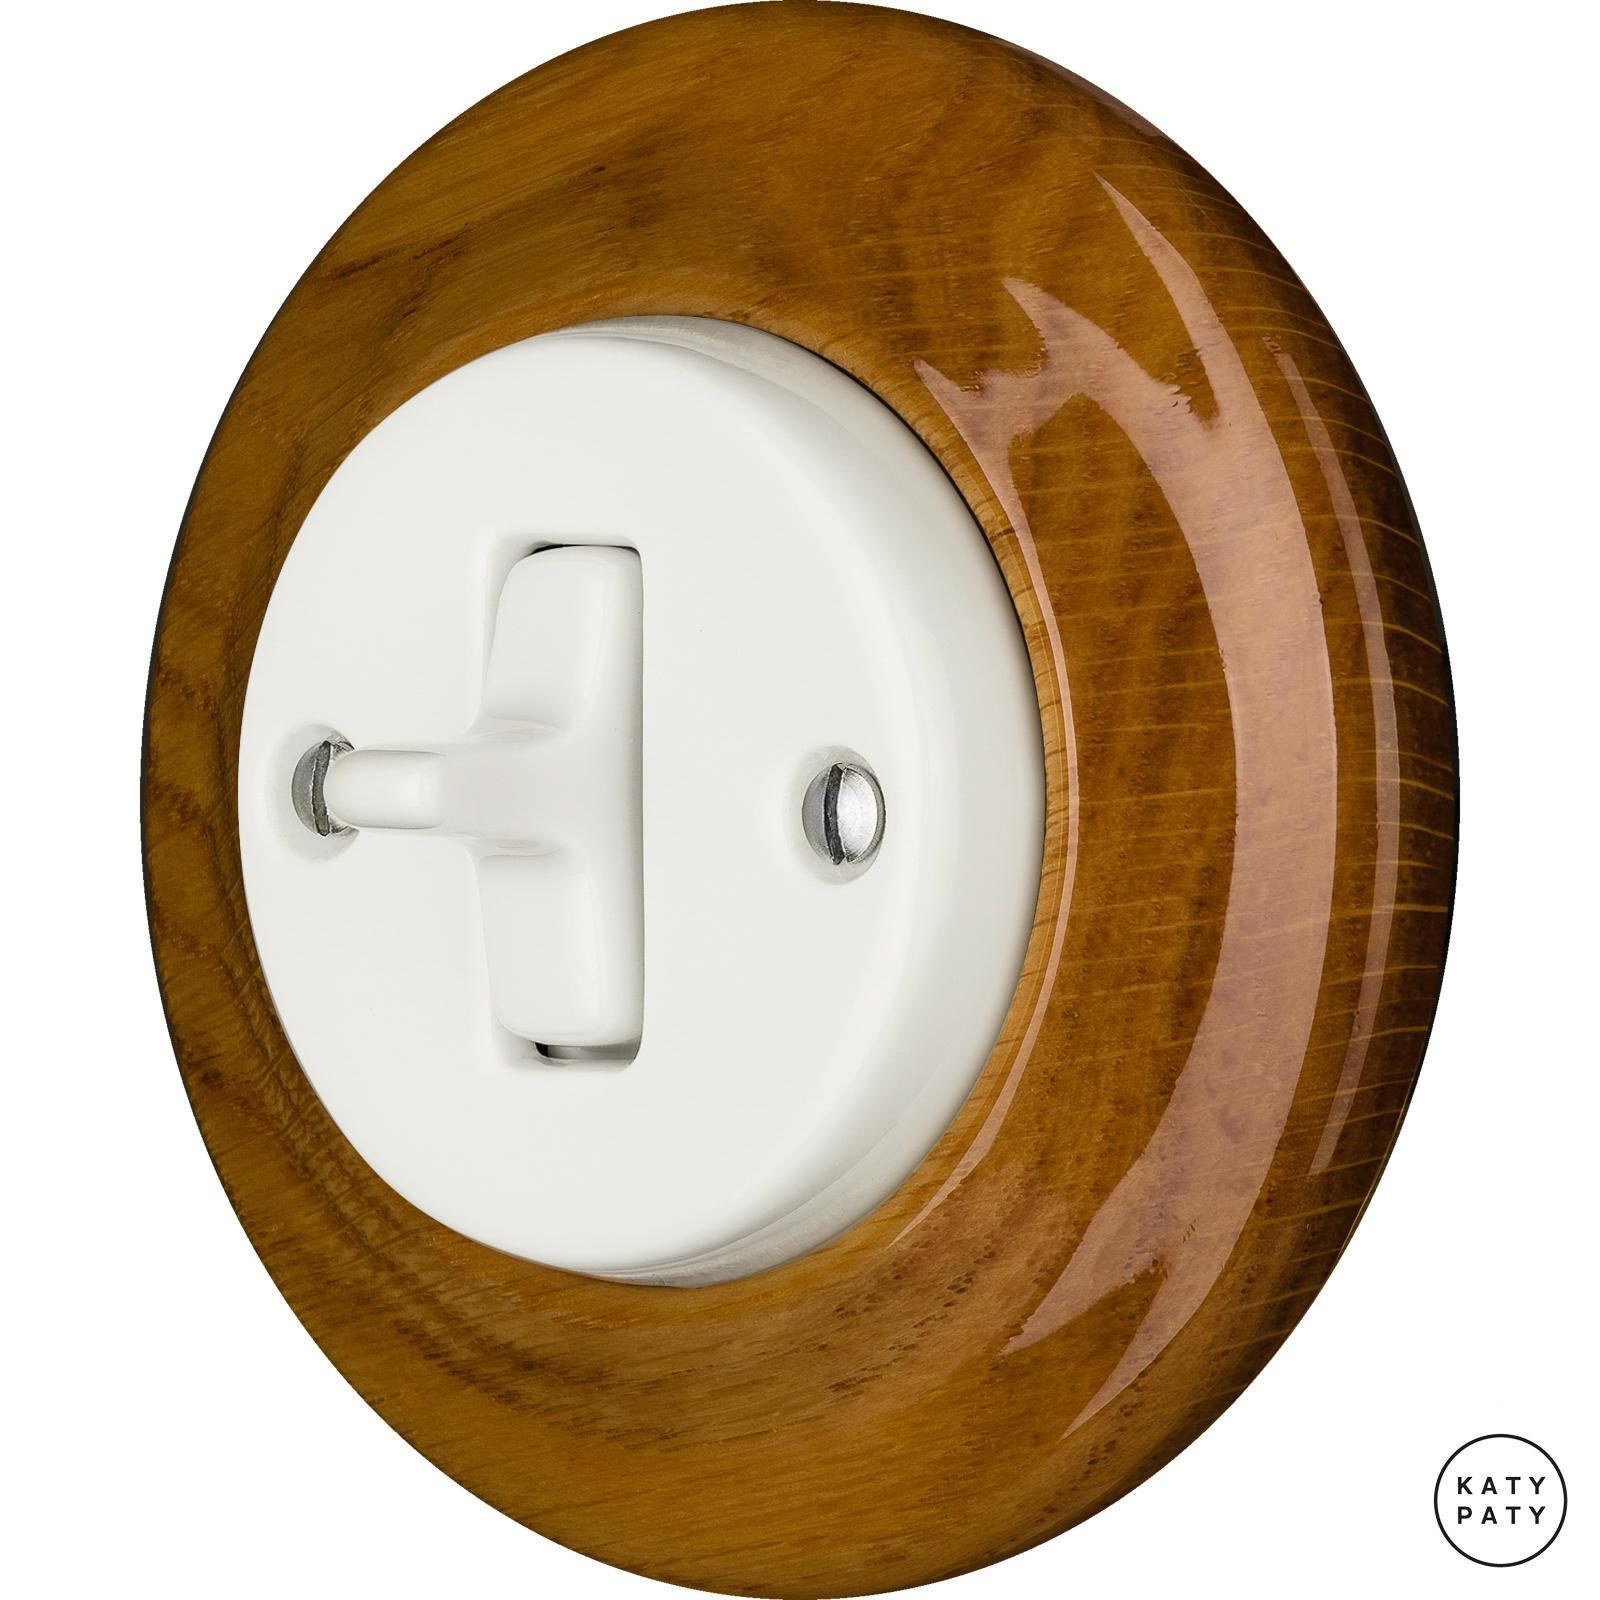 Porcelain Toggle switches - 1 gang ()  - ROBUS | Katy Paty